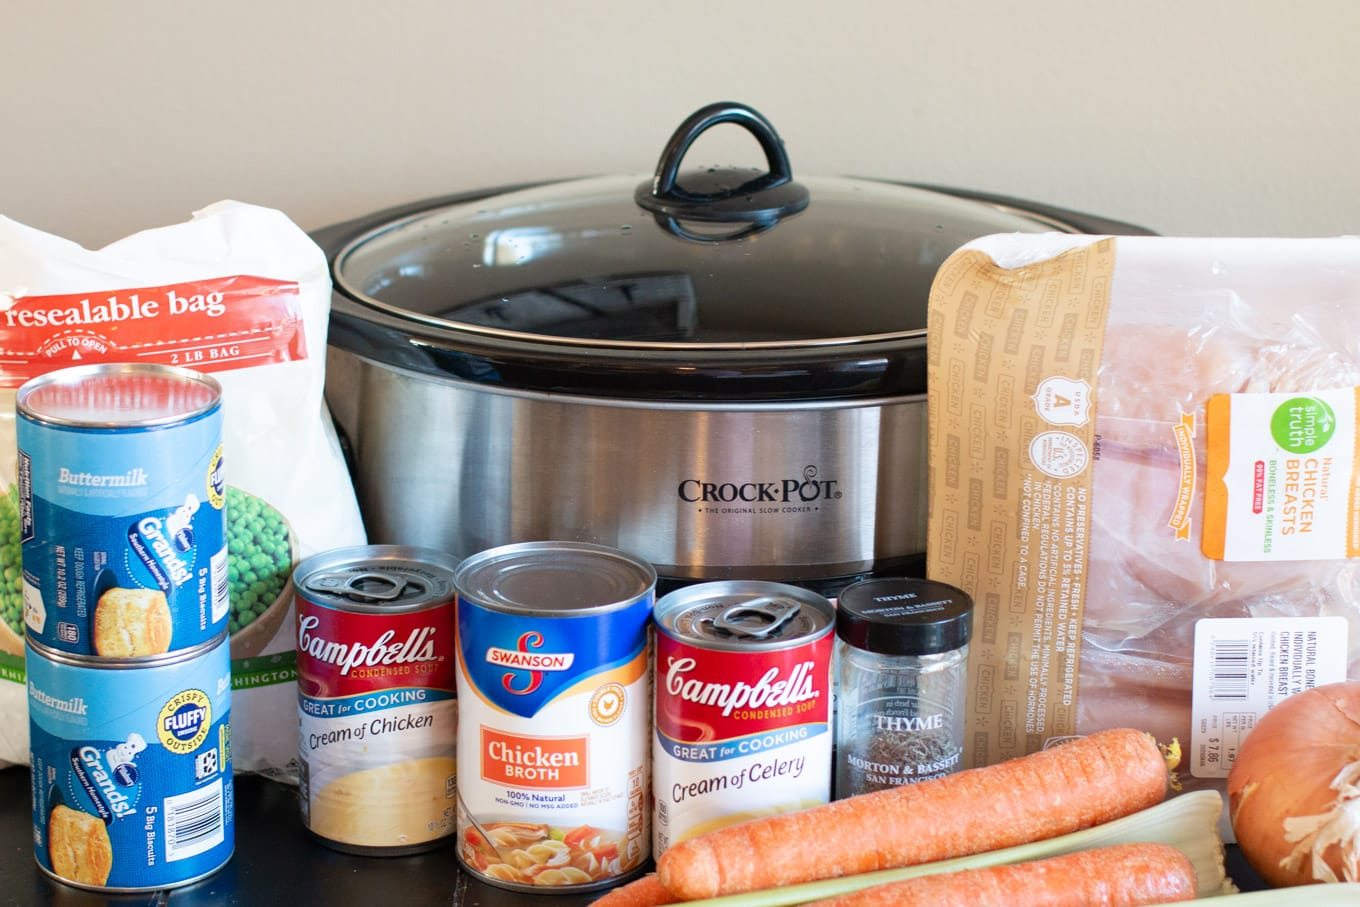 Ingredients: chicken, cream soups, chicken broth, carrots, onion, celery, thyme and biscuits.